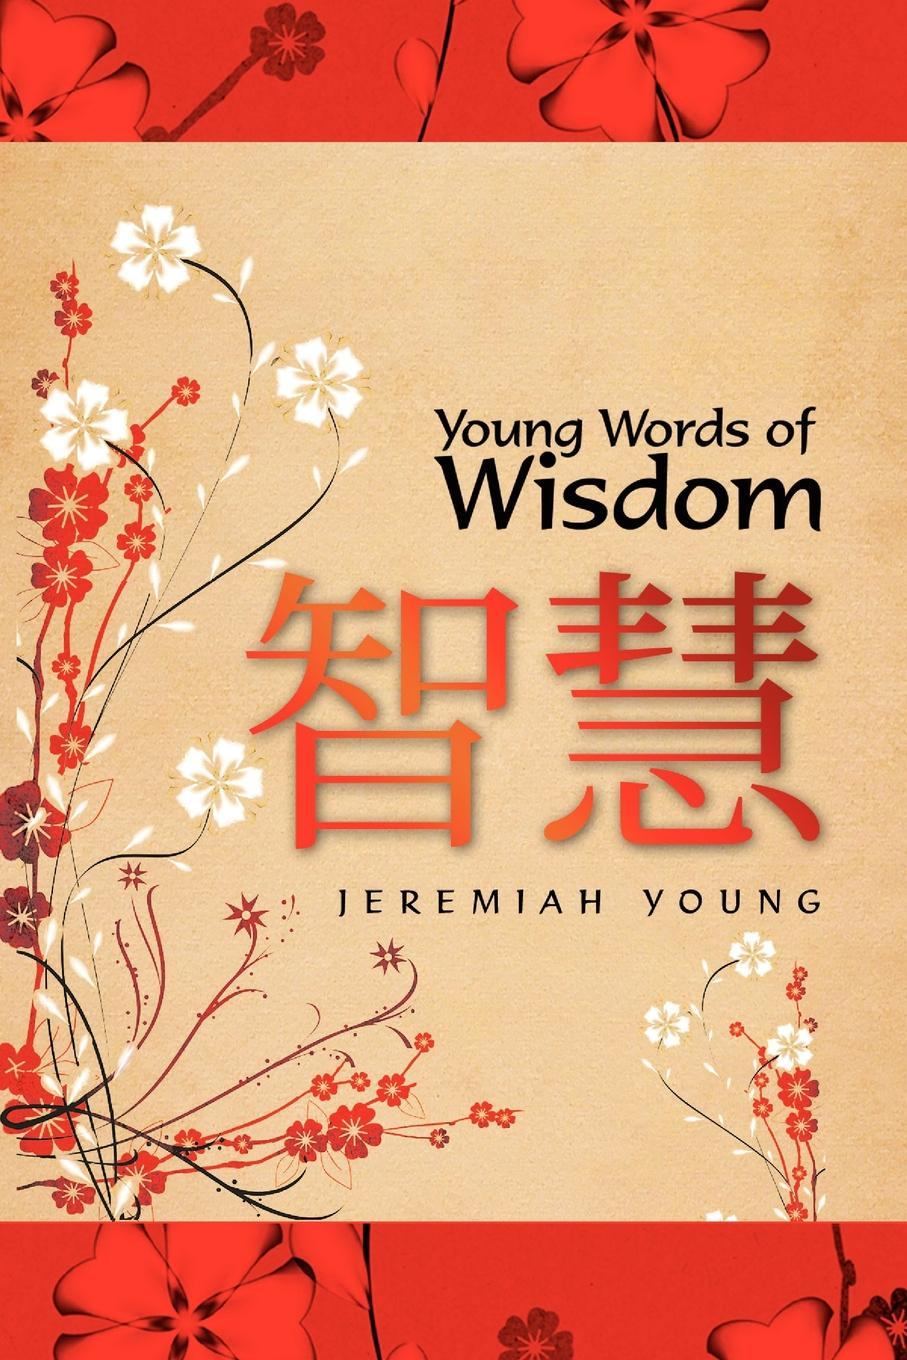 Jeremiah Young Young Words of Wisdom shakespeare s words of wisdom panorama pops